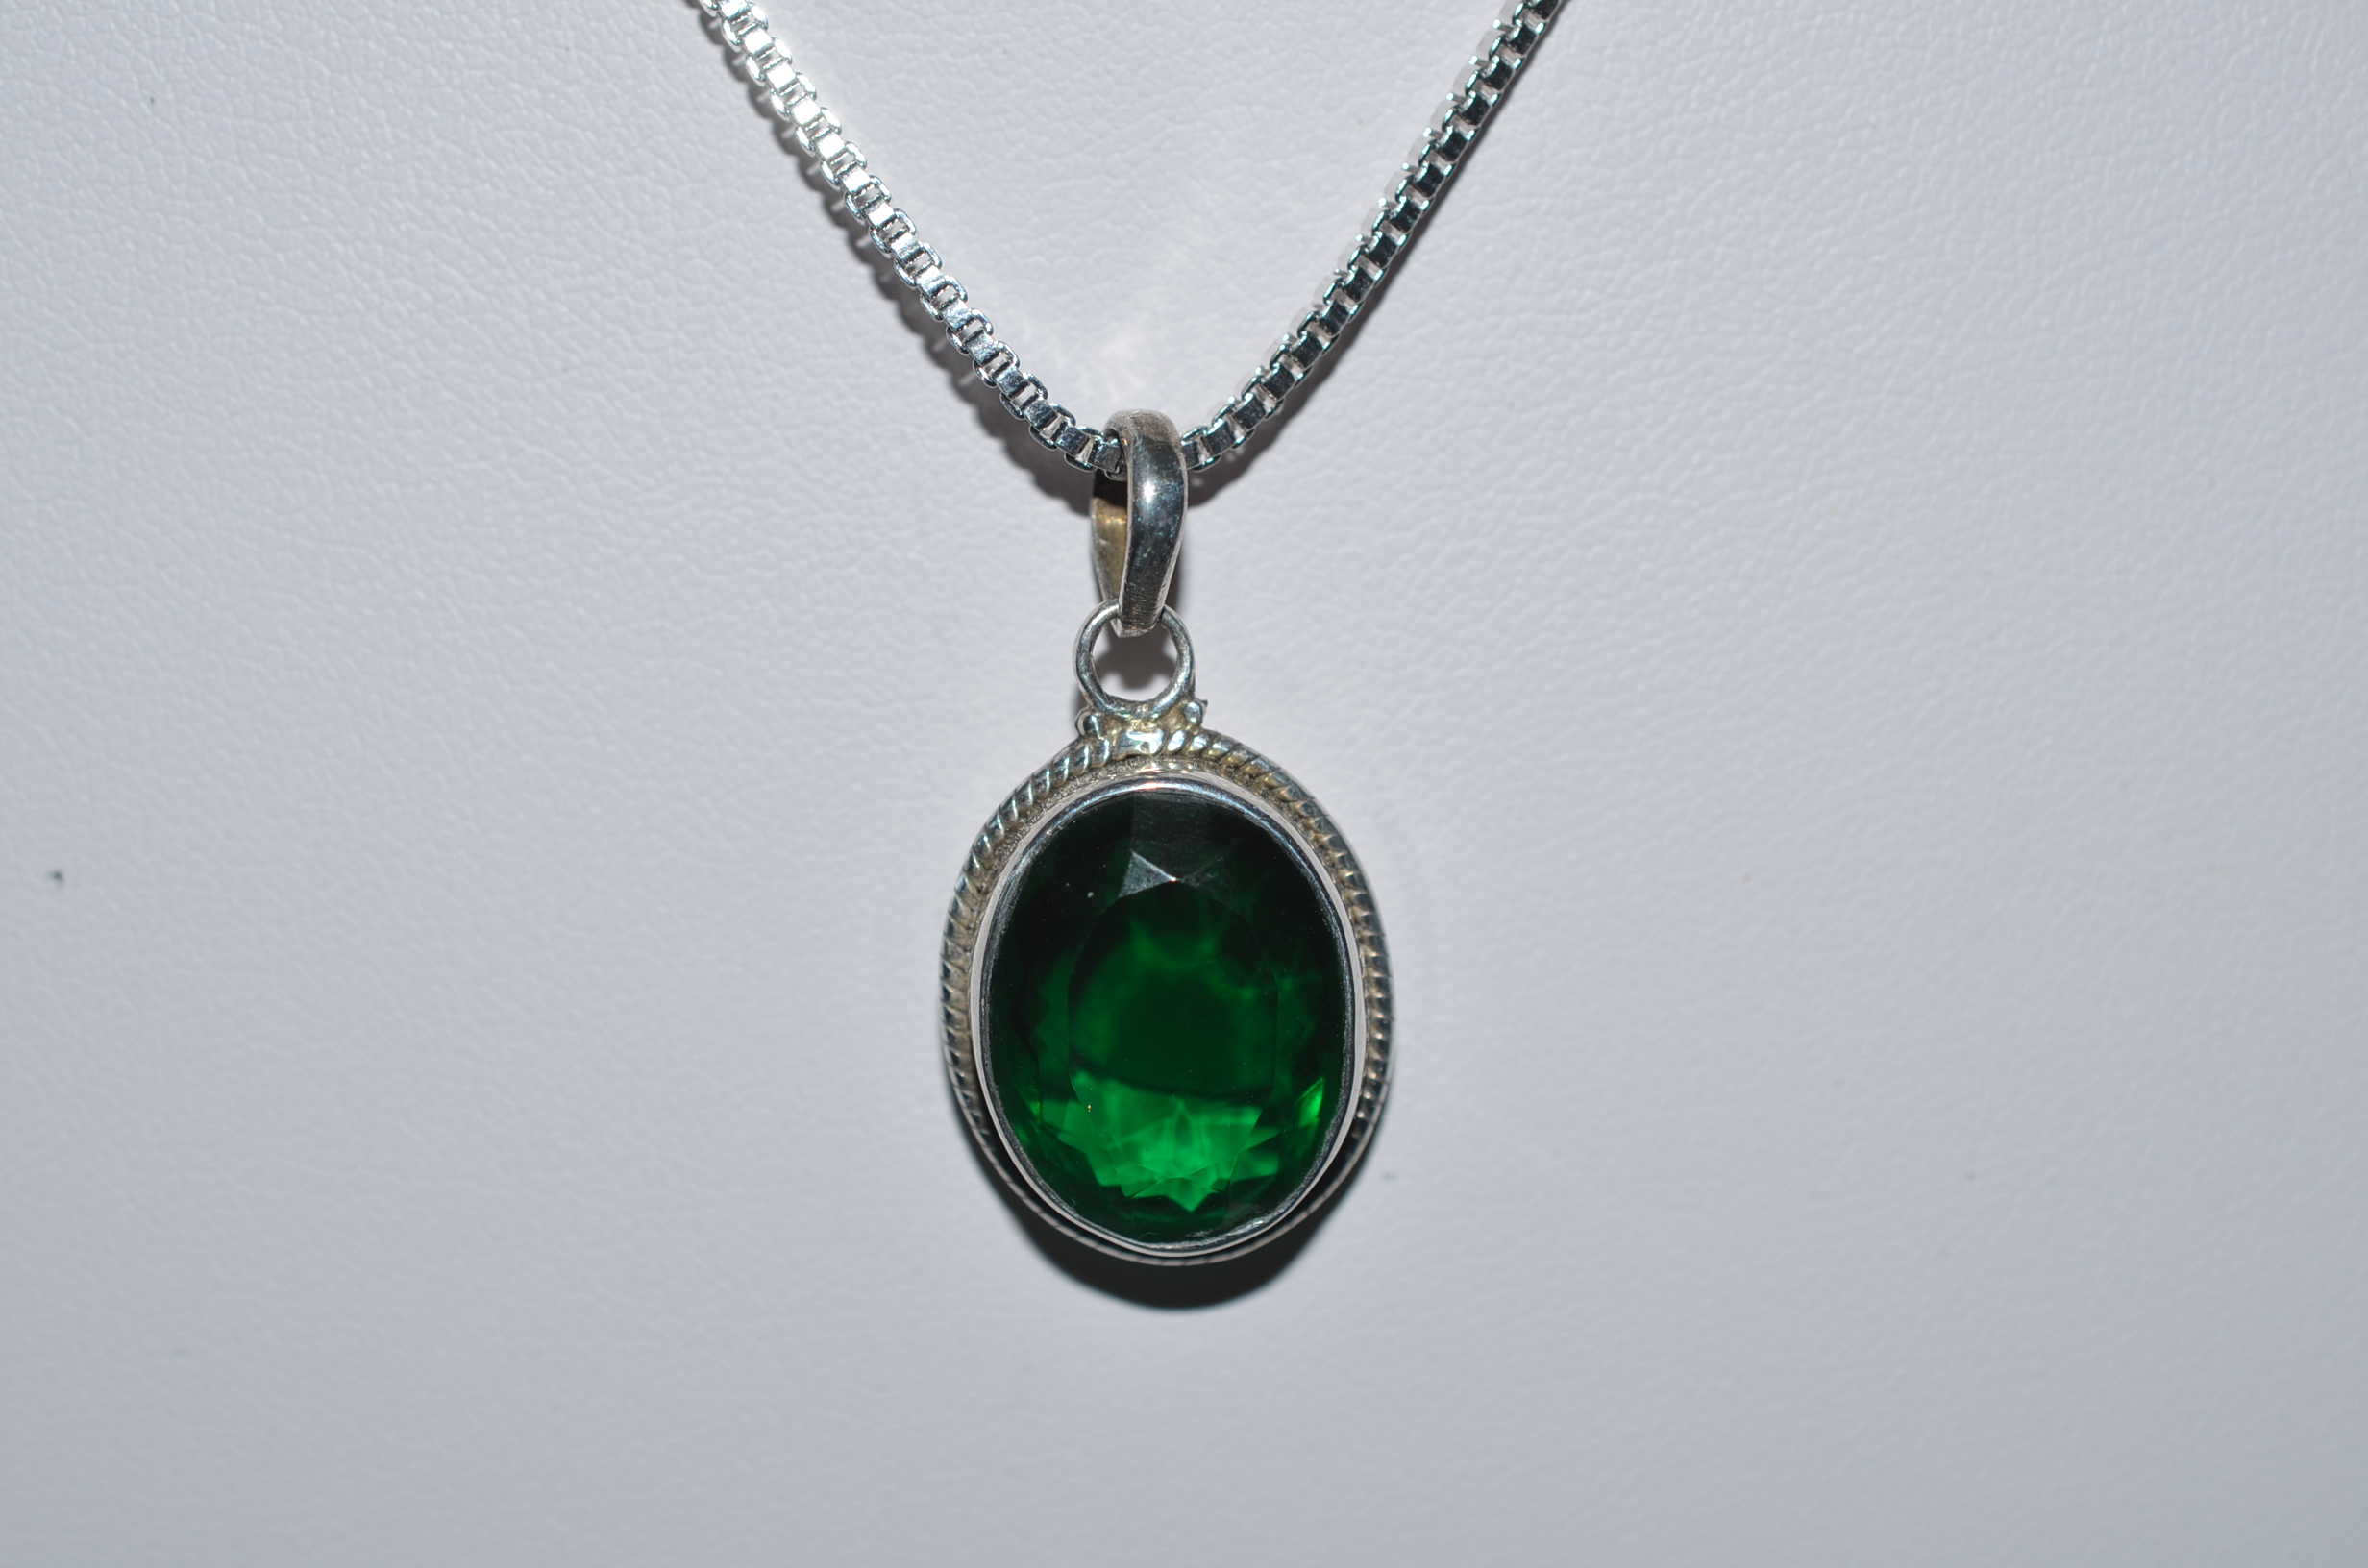 Emerald Green Quartz Pendant  A Journey Through Art. 14k Gold Anklet. Virgin Mary Medallion. Infinity Bands. Emerald Accent Engagement Rings. Solid Sterling Silver Bangle Bracelets. Yellow Gold Necklace. Black Pearl Gemstone. Tanzanite Diamond